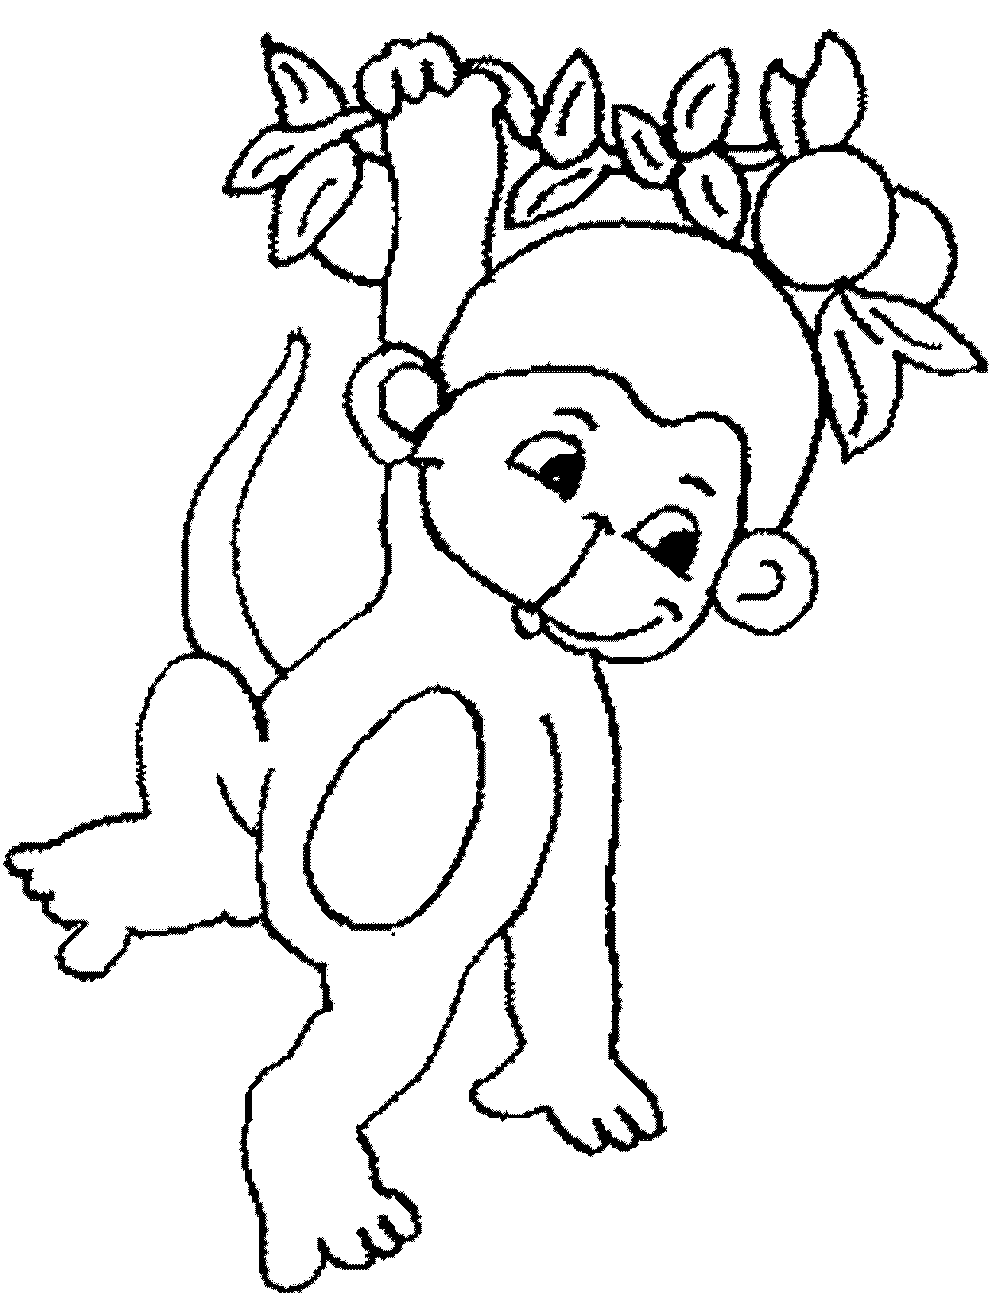 monkey color pages cartoon animals kids monkey coloring page wecoloringpagecom pages color monkey